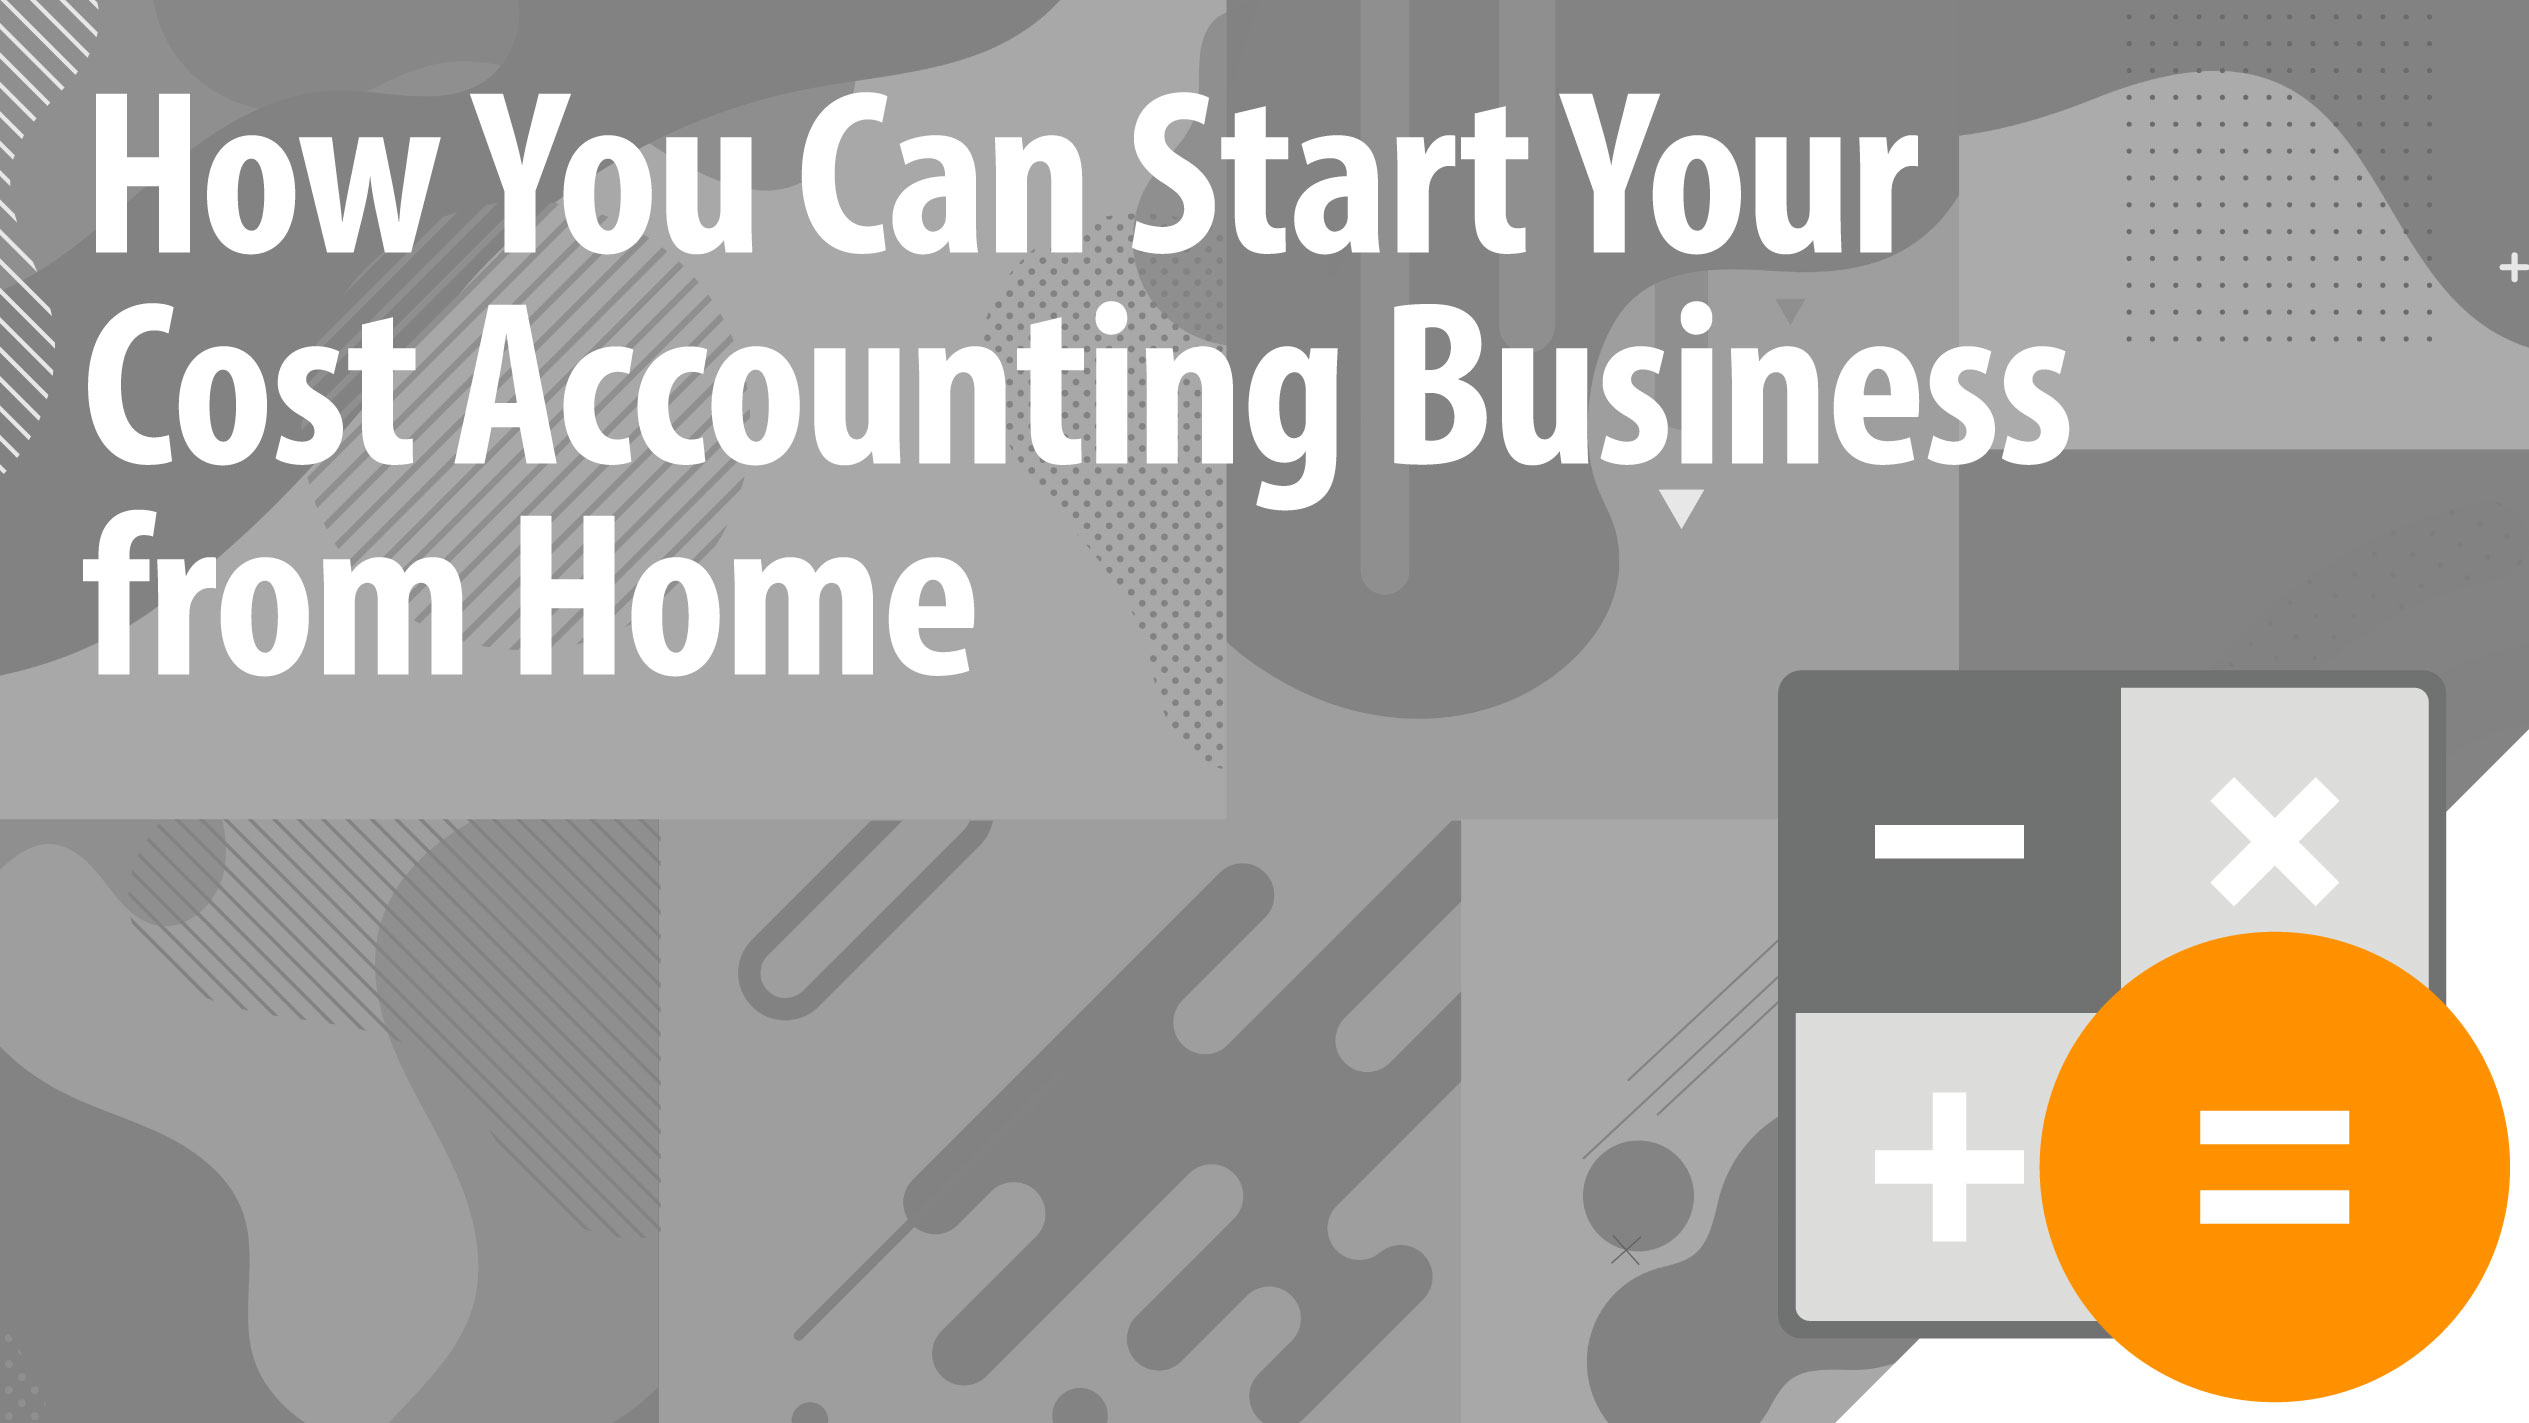 How You Can Start Your Cost Accounting Business from Home